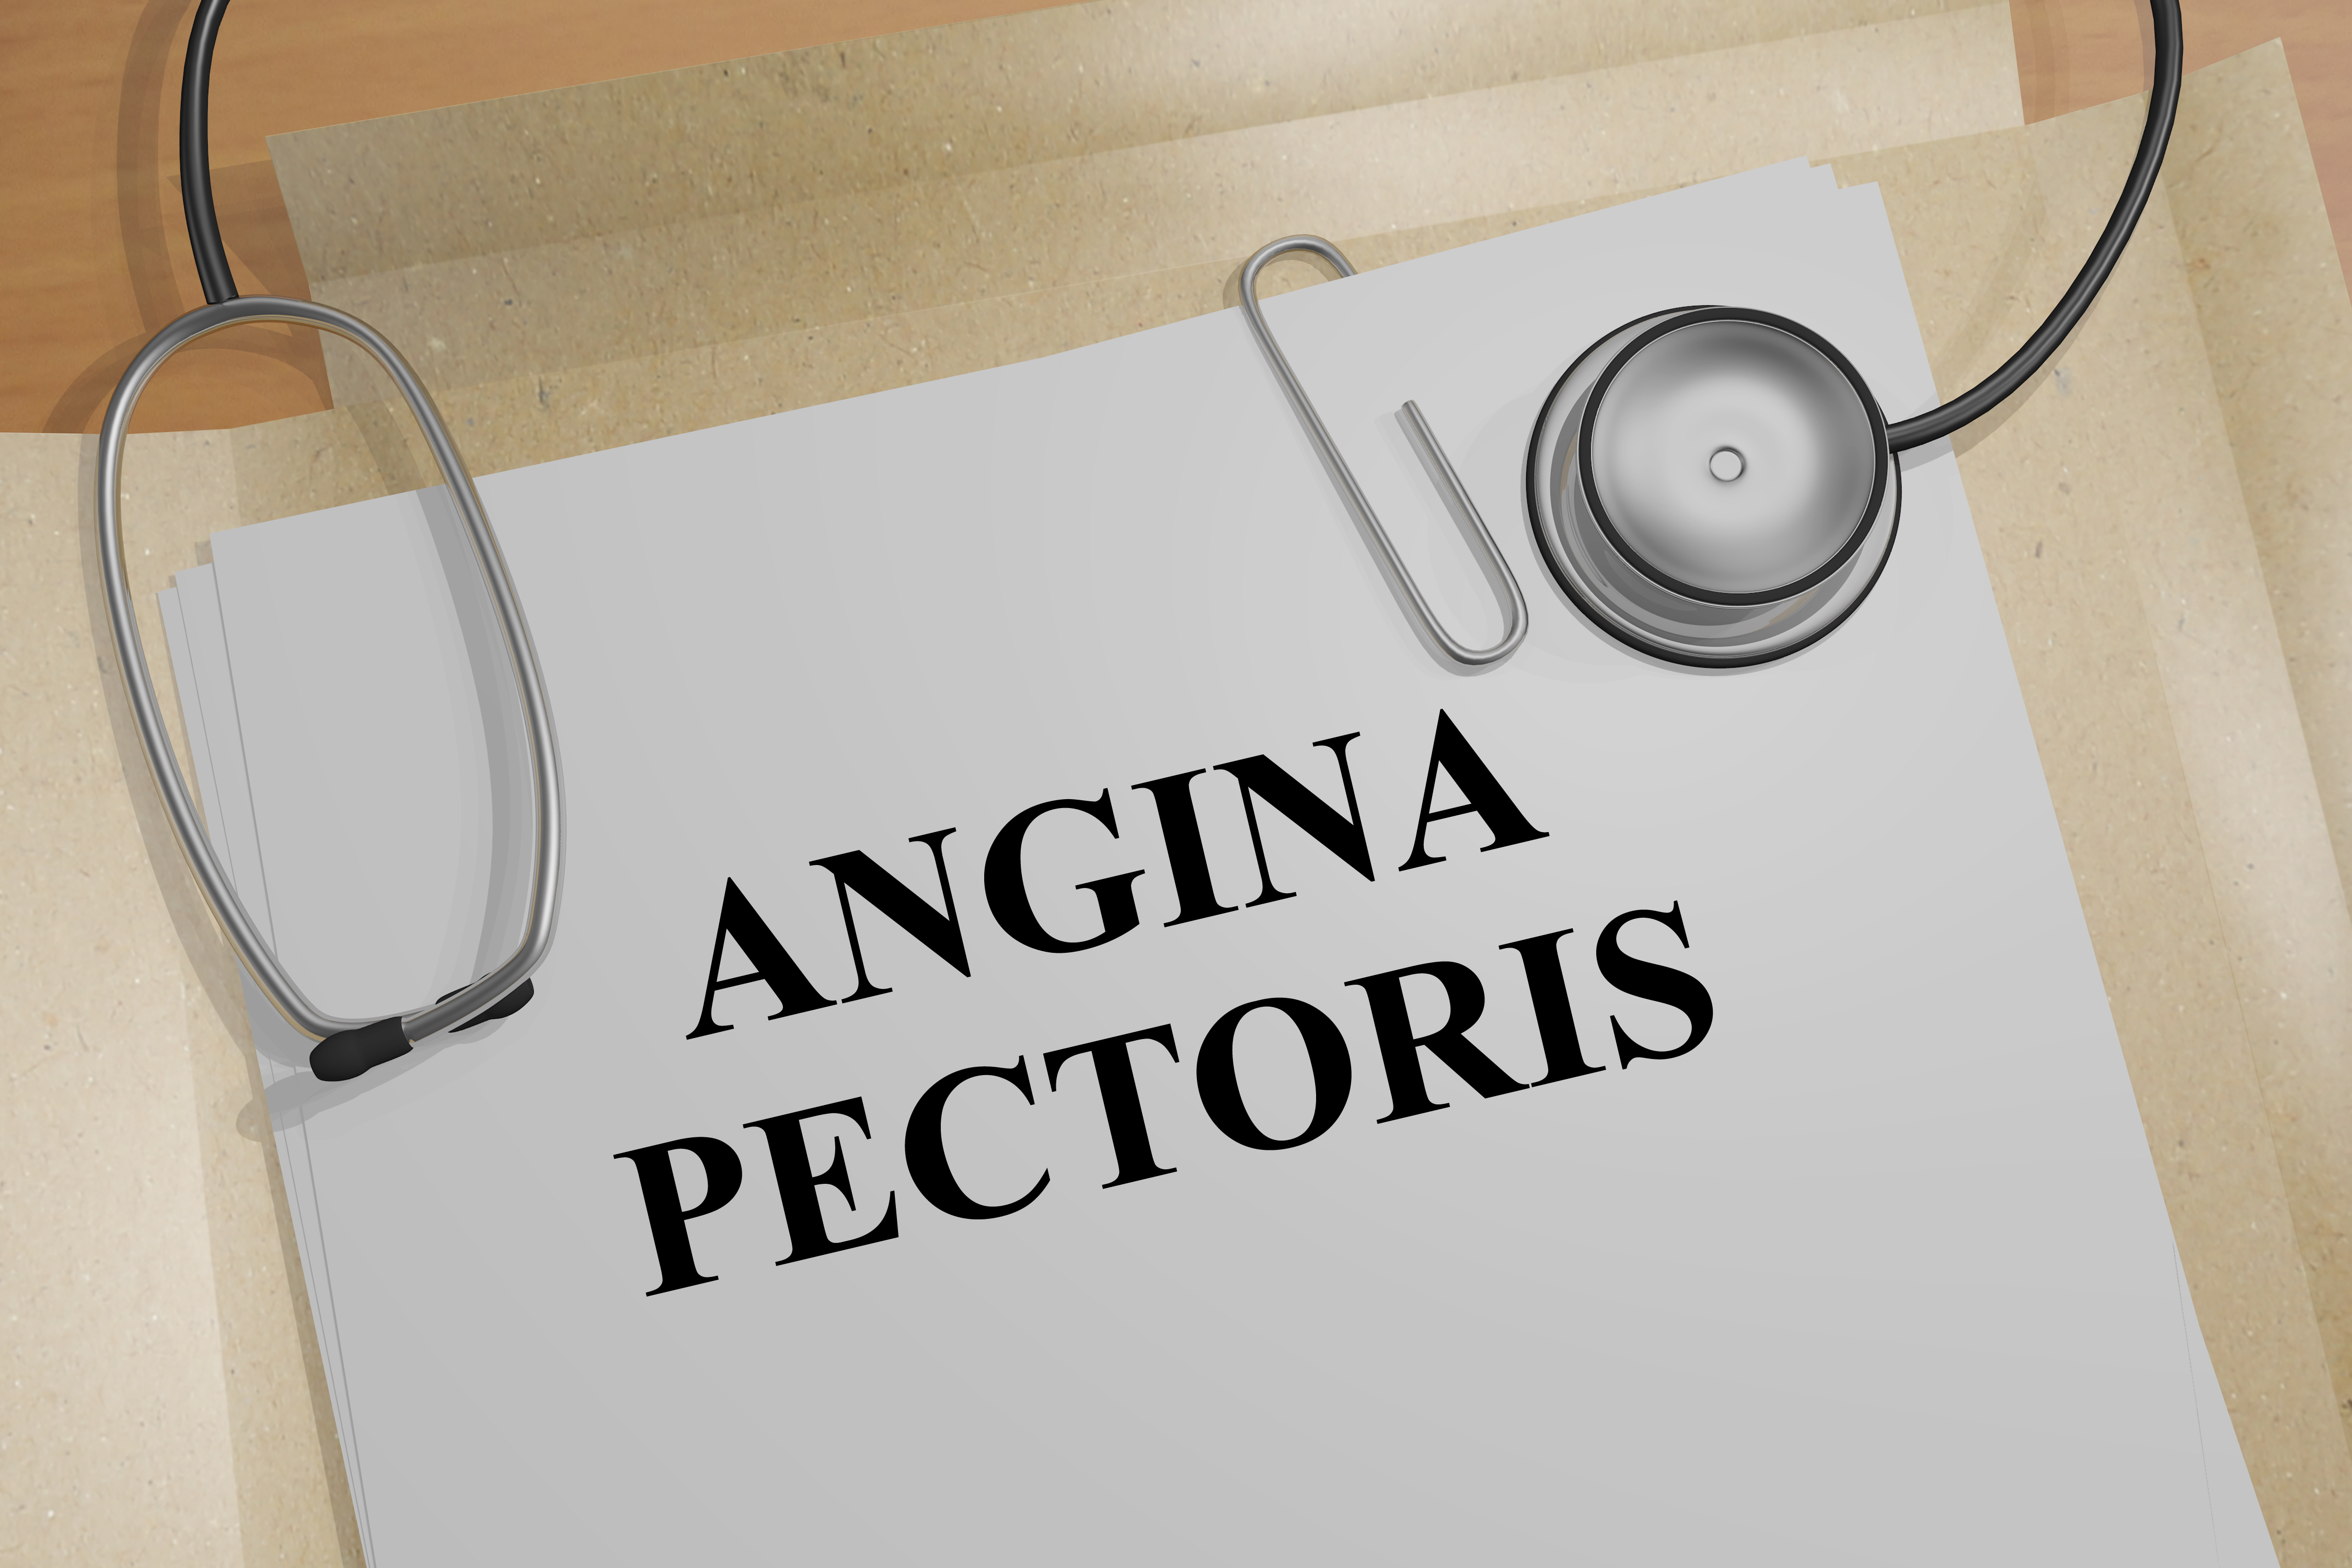 Angina Pectoris & Marijuana Information: Treat Angina Pectoris With Cannabis